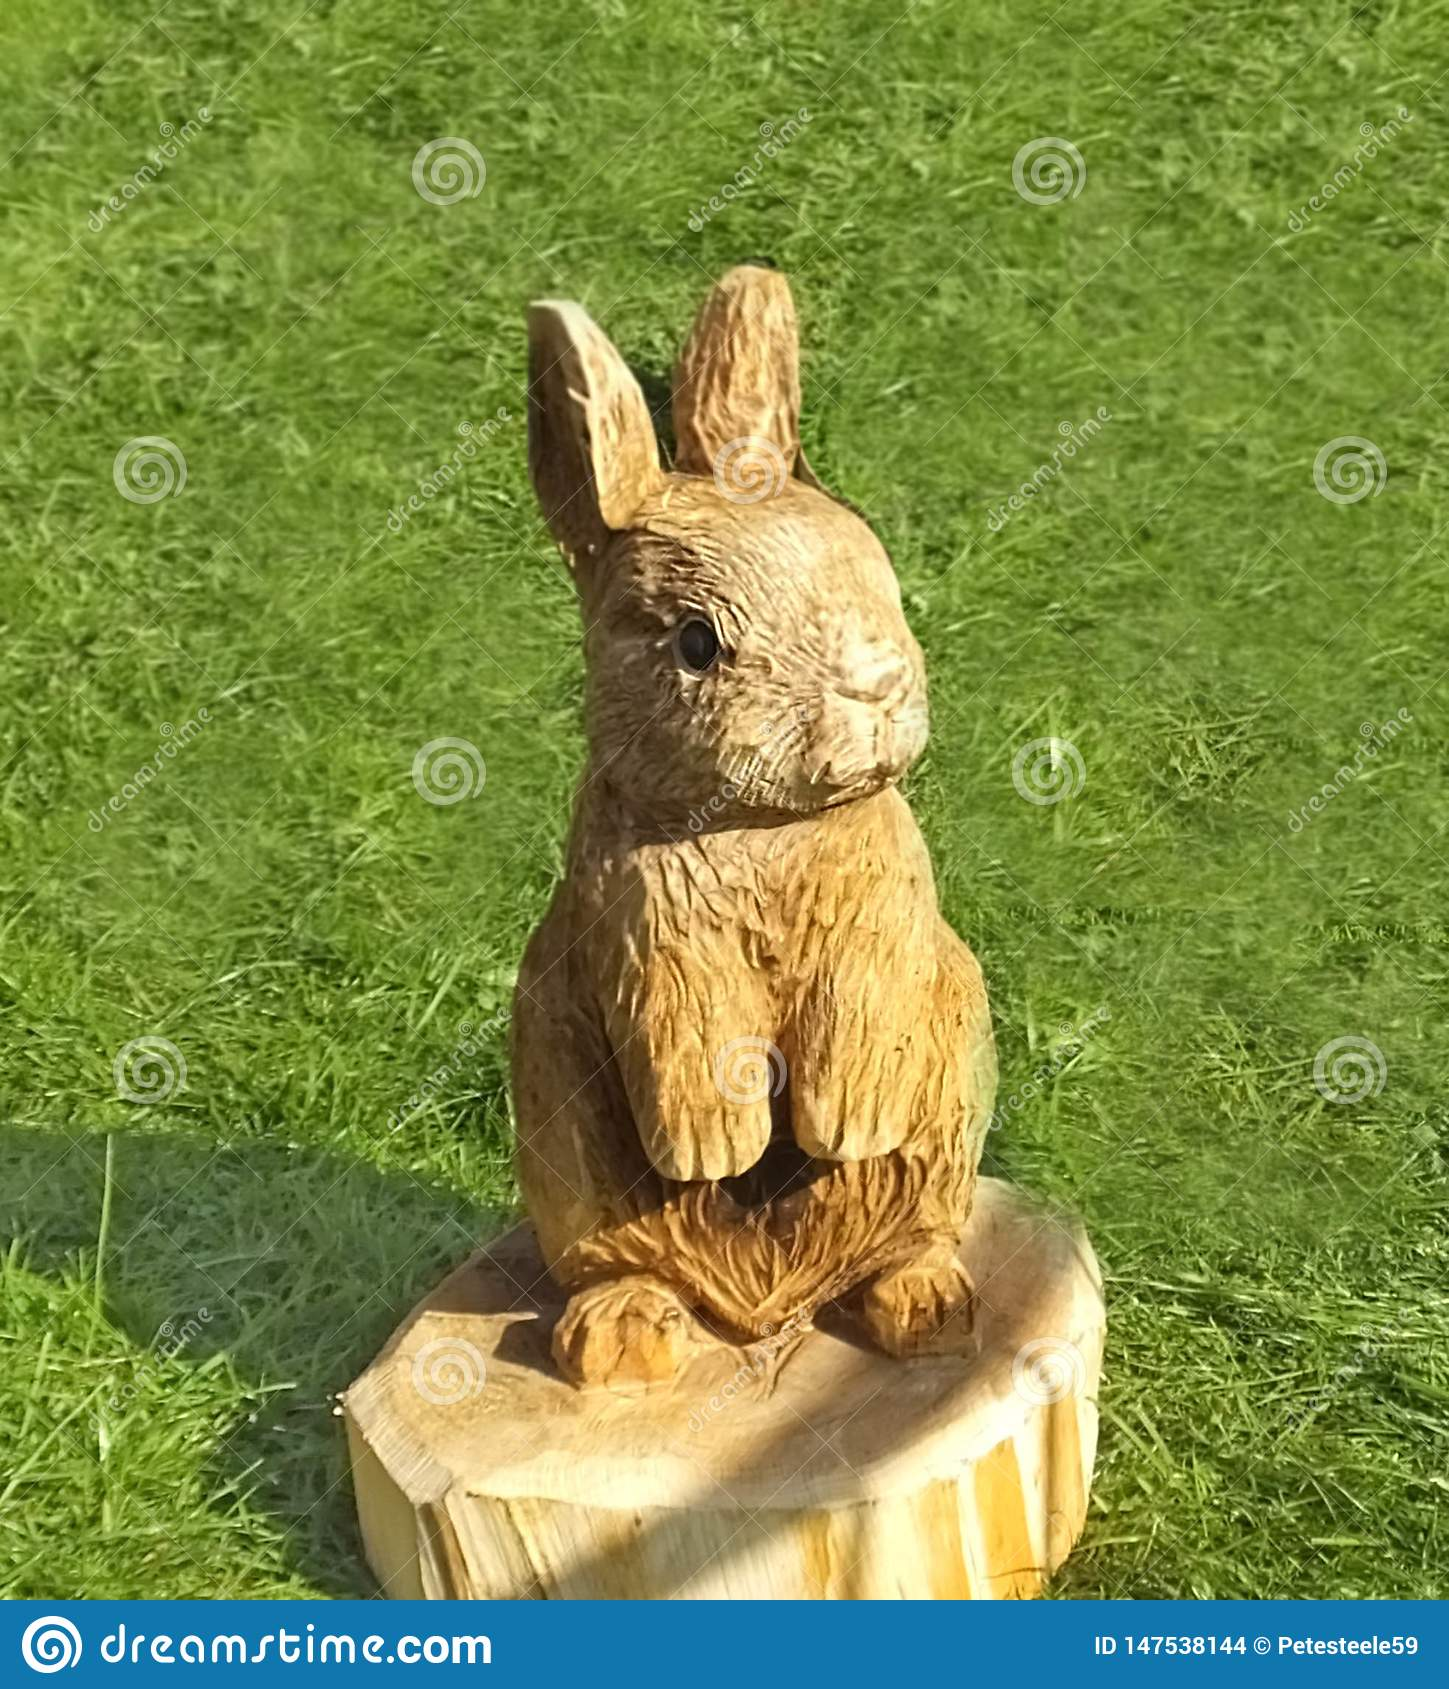 Wood Carving Of A Rabbit In A Garden Woodworking Stock Photo